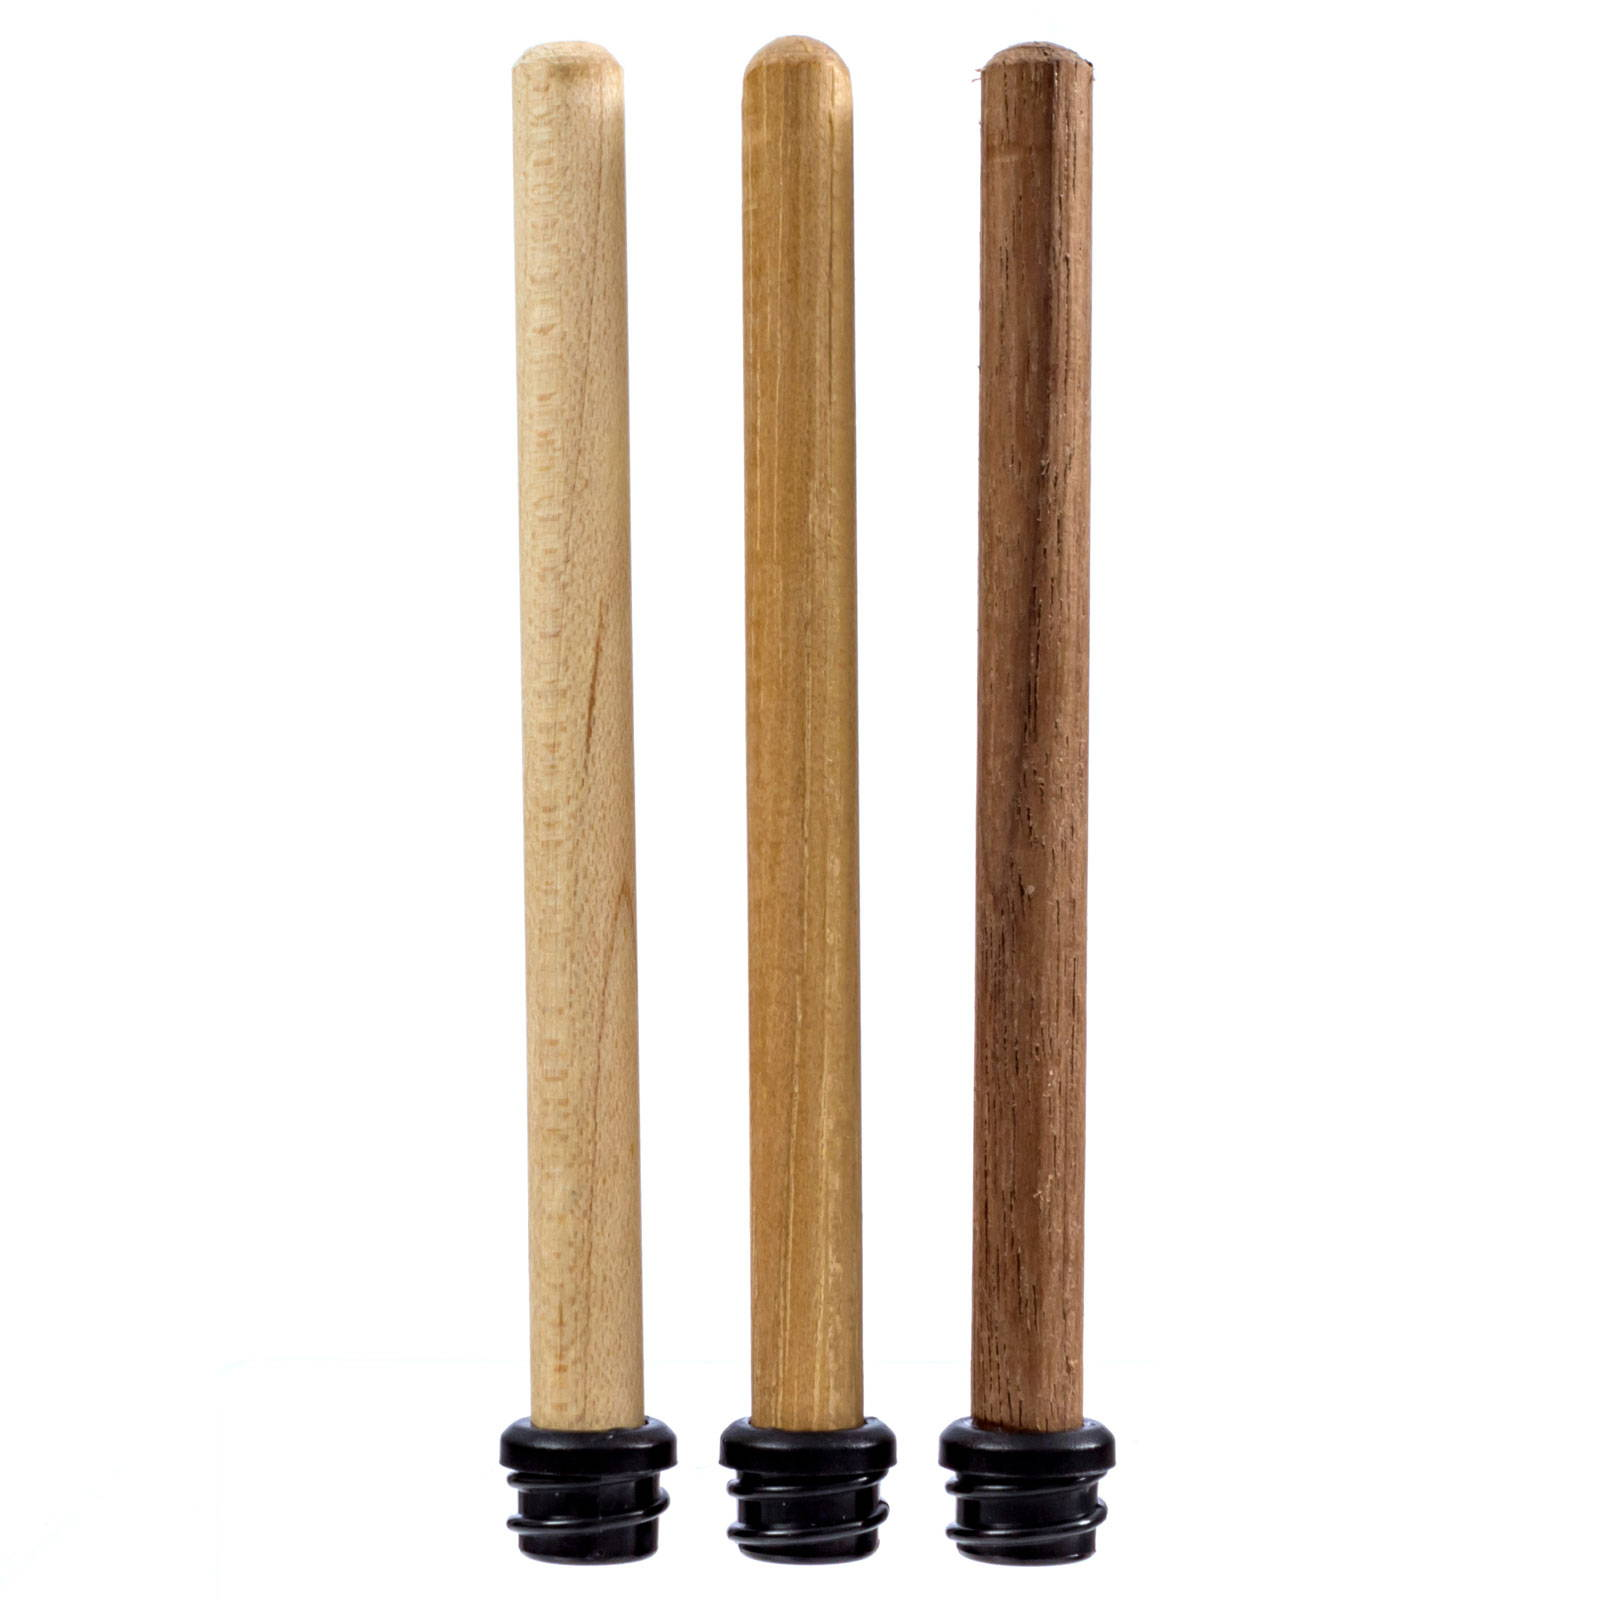 Three Dowels Maple Hickory Black Walnut